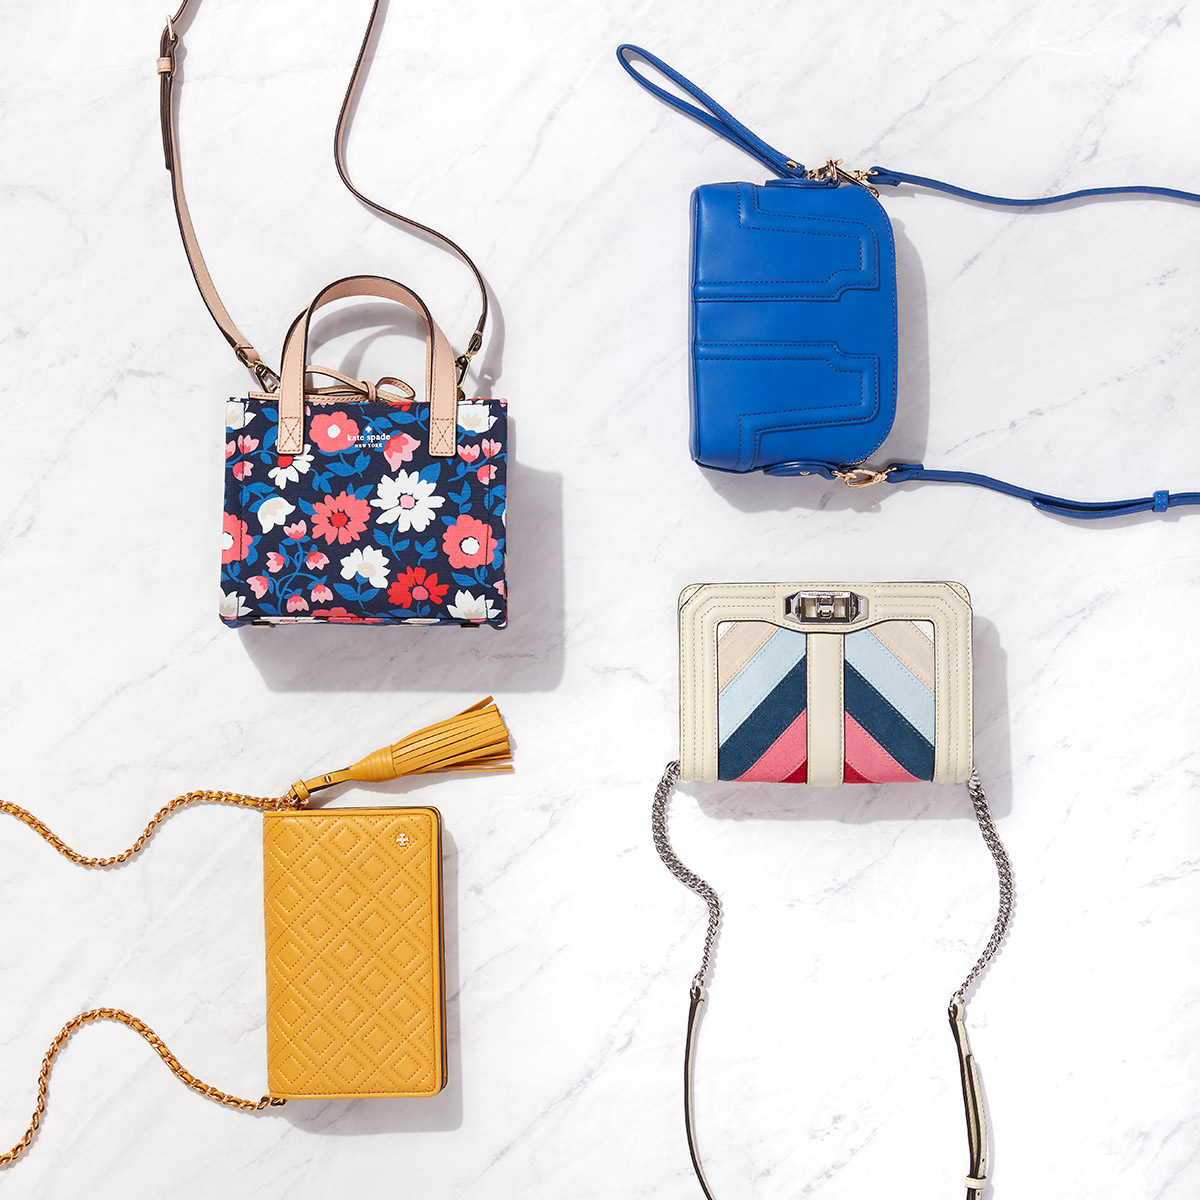 Four mini hand bags in a variety of patterns and colors laid flat on a marble background.